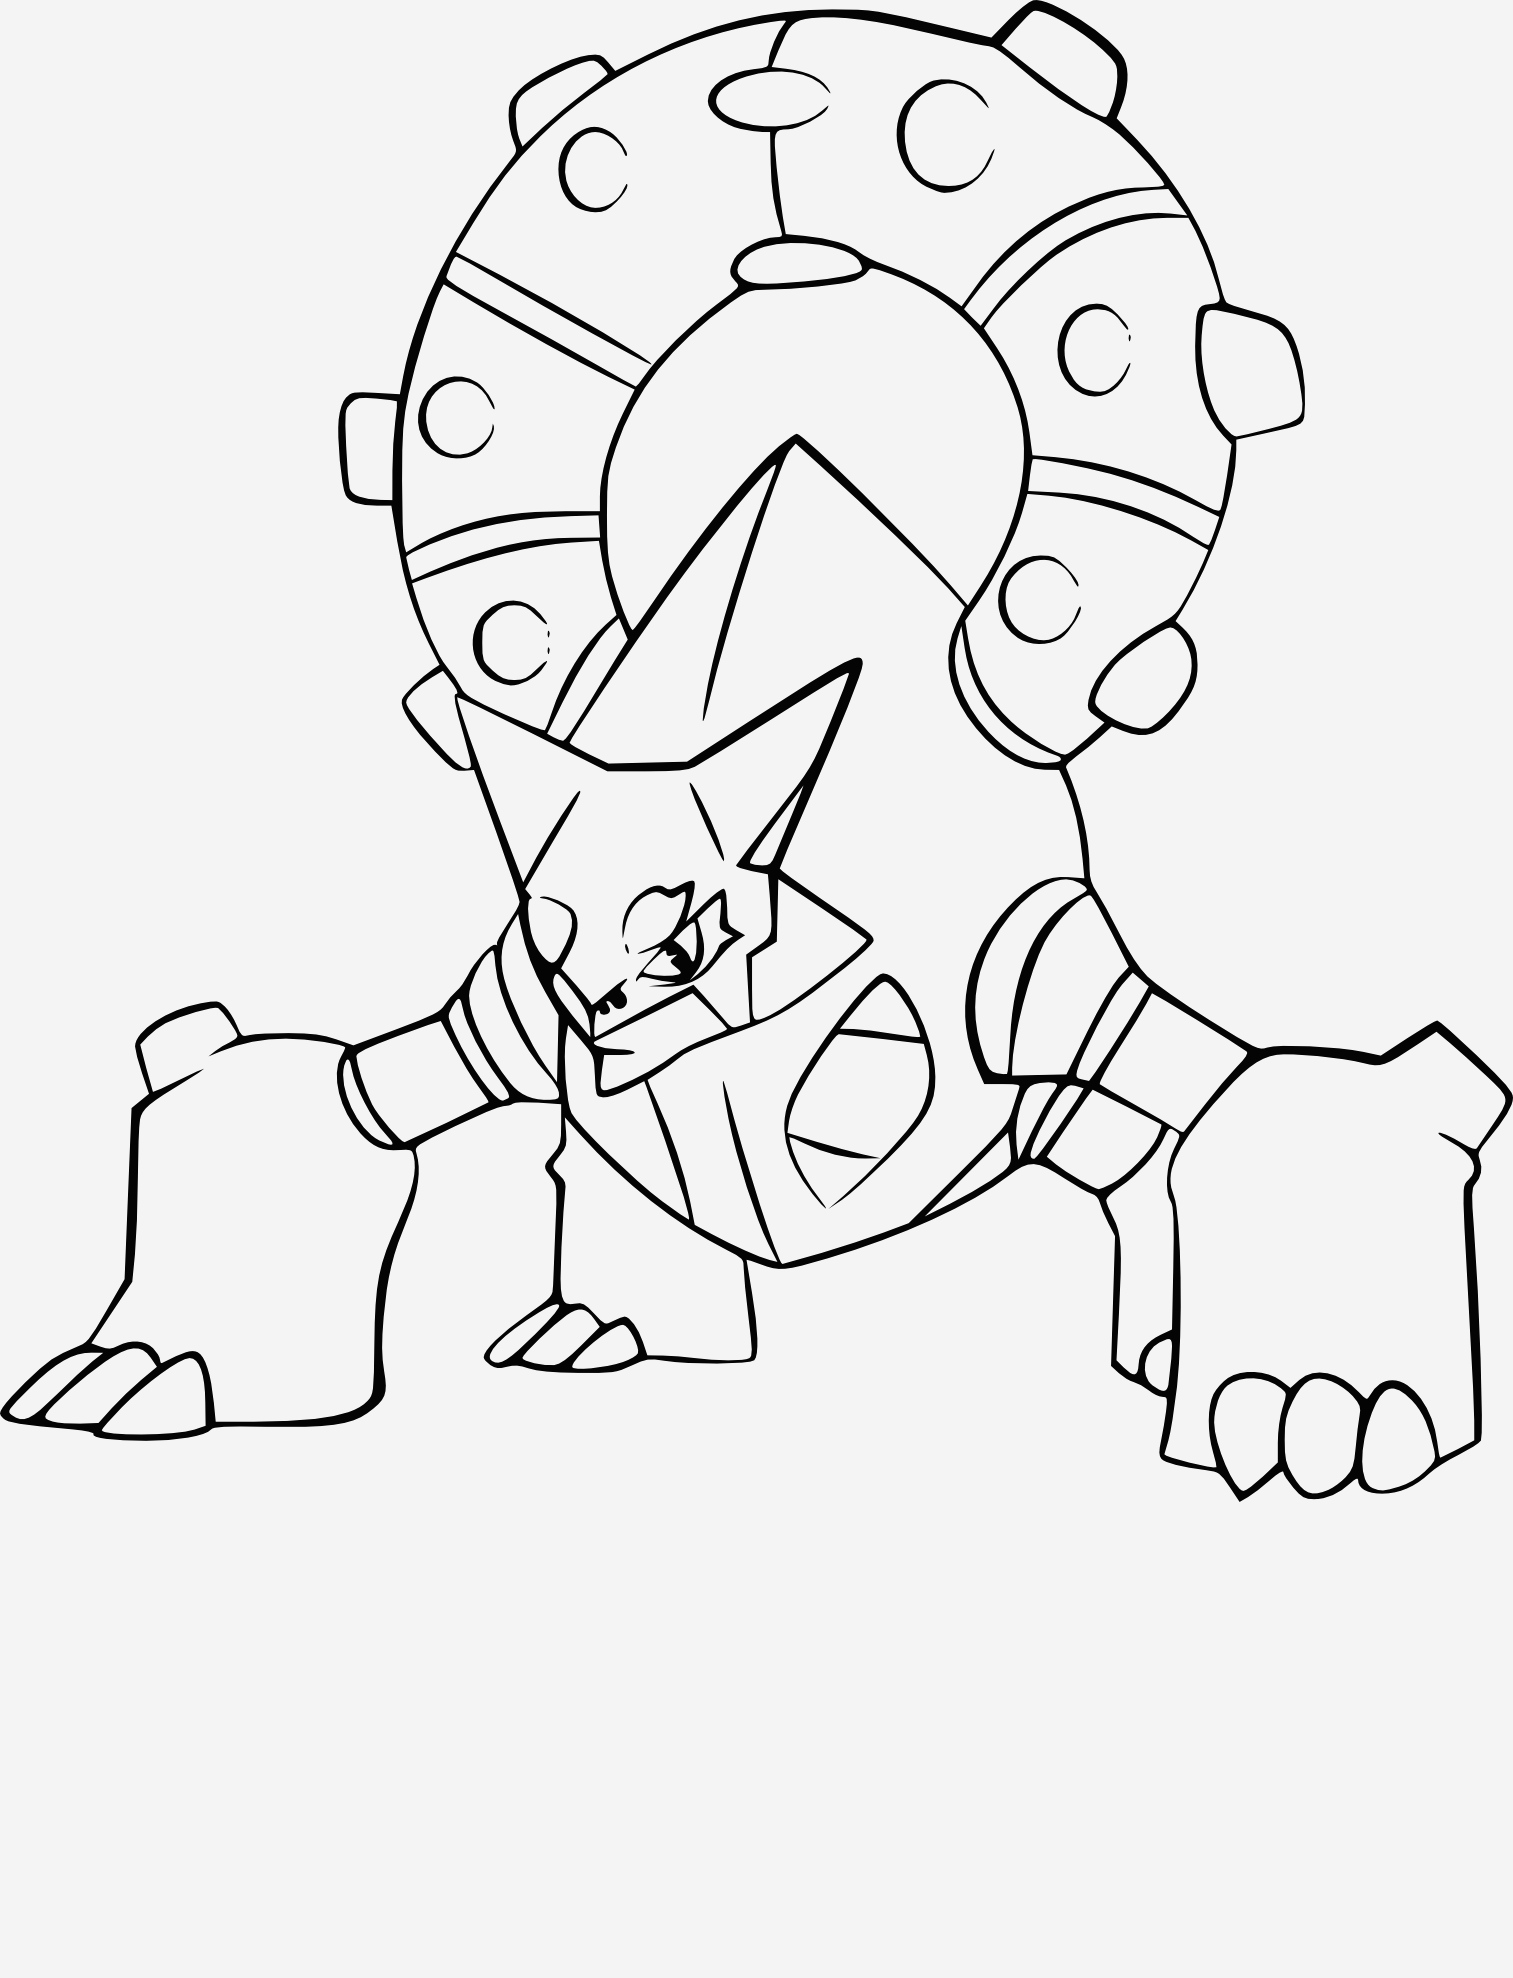 Coloriage à Imprimer Pokemon Legendaire Luxury Coloriage Volcanion Pokemon   Imprimer Of Coloriage à Imprimer Pokemon Legendaire